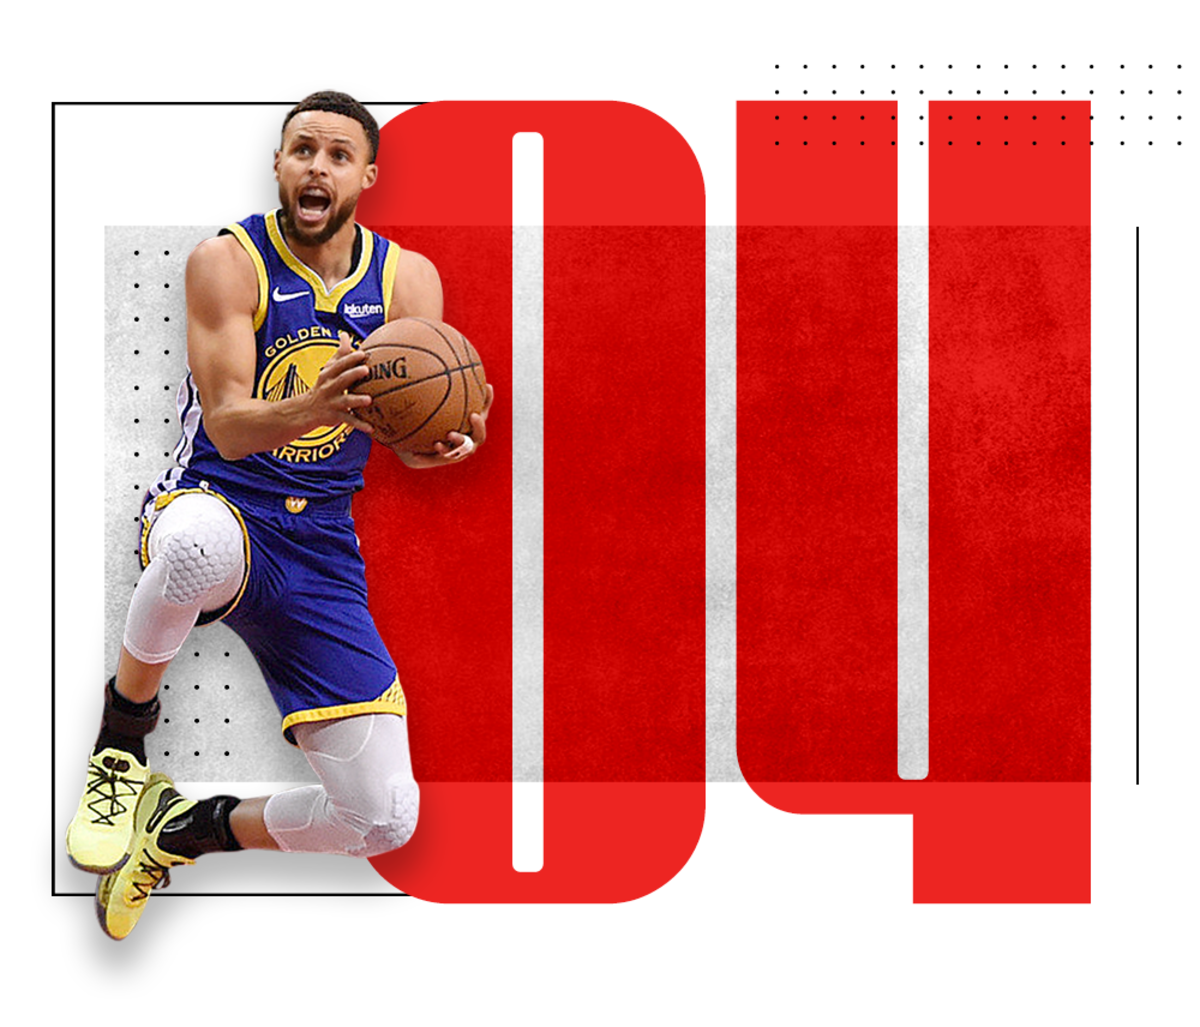 top-100-nba-players-2020-Stephen-Curry.png